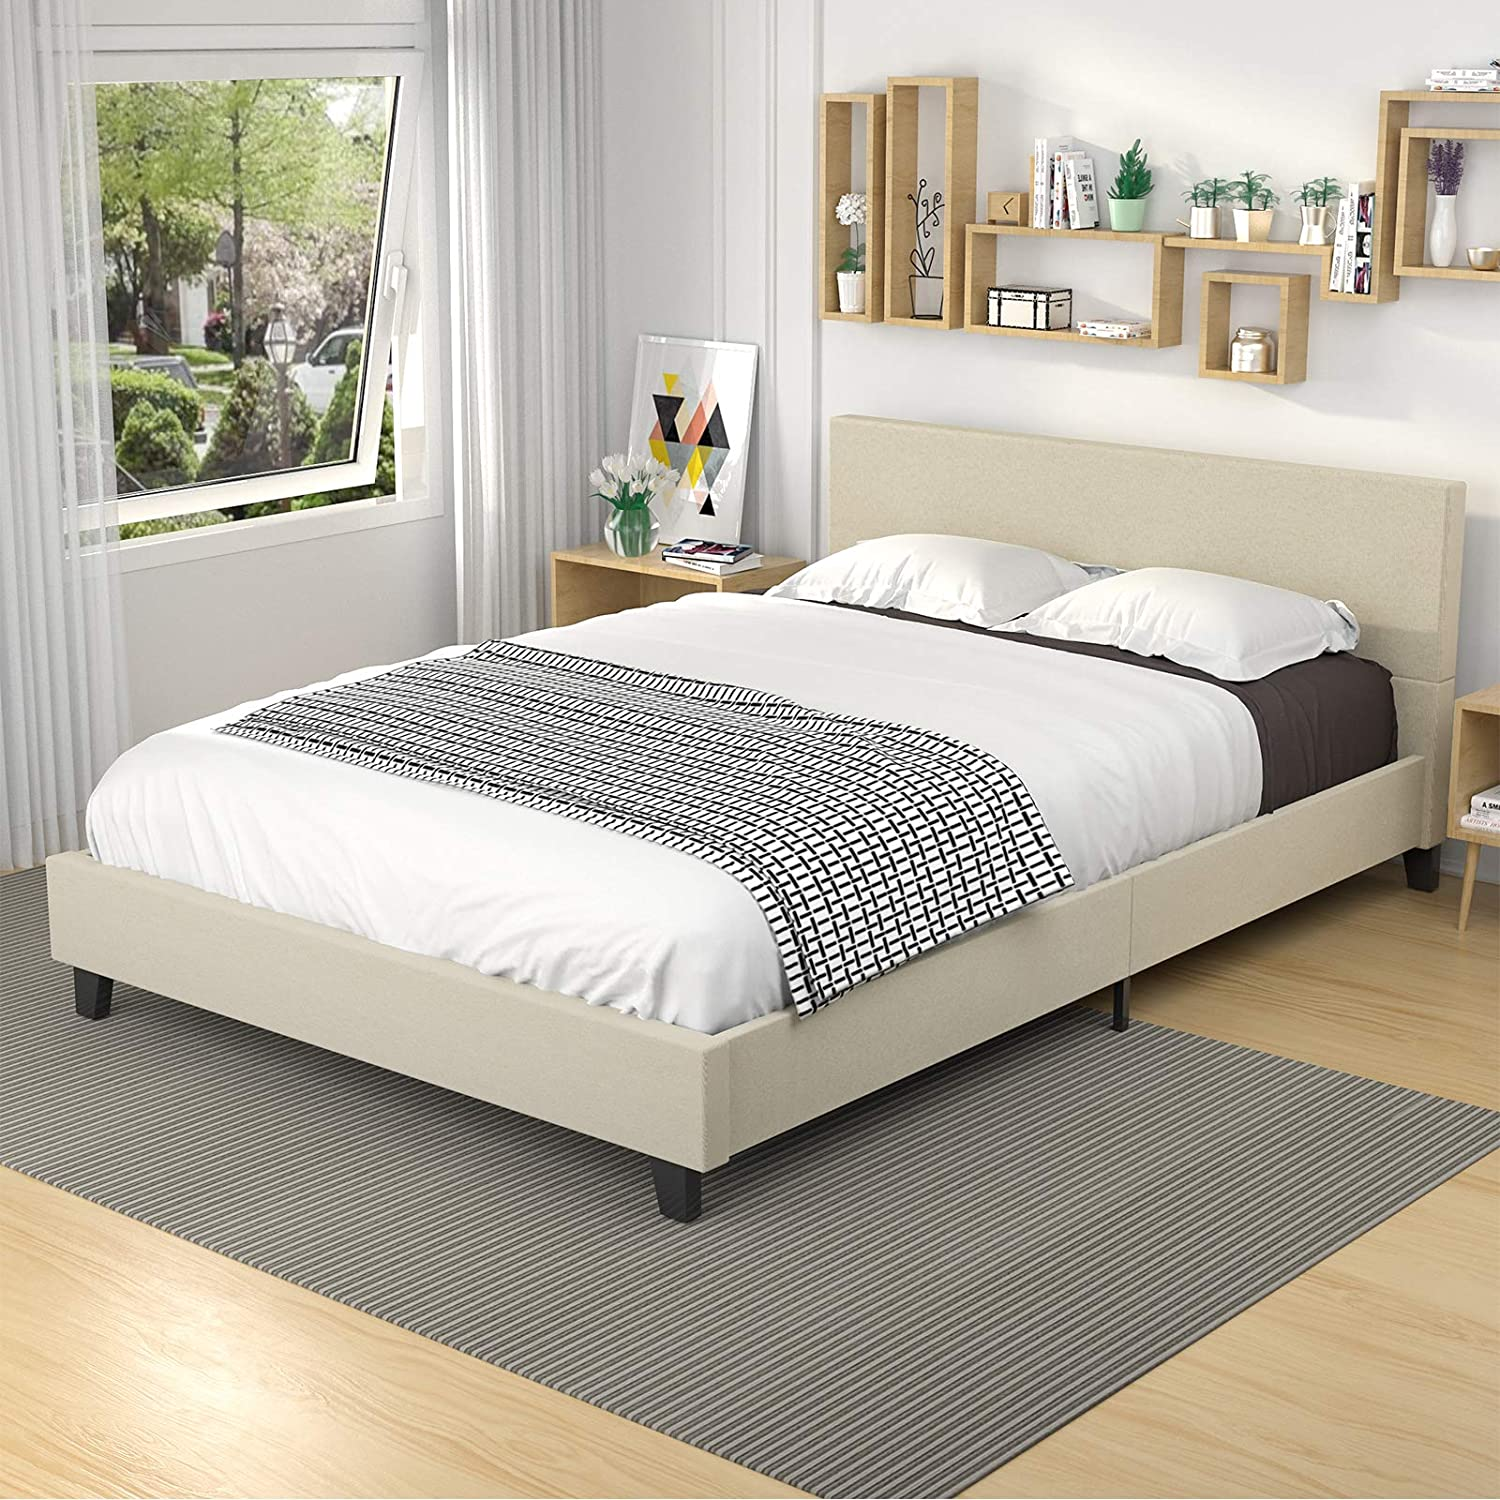 mecor upholstered linen platform bed frame queen bed frame with fabric headboard strong wood slats support easy assembly queen beige walmart com